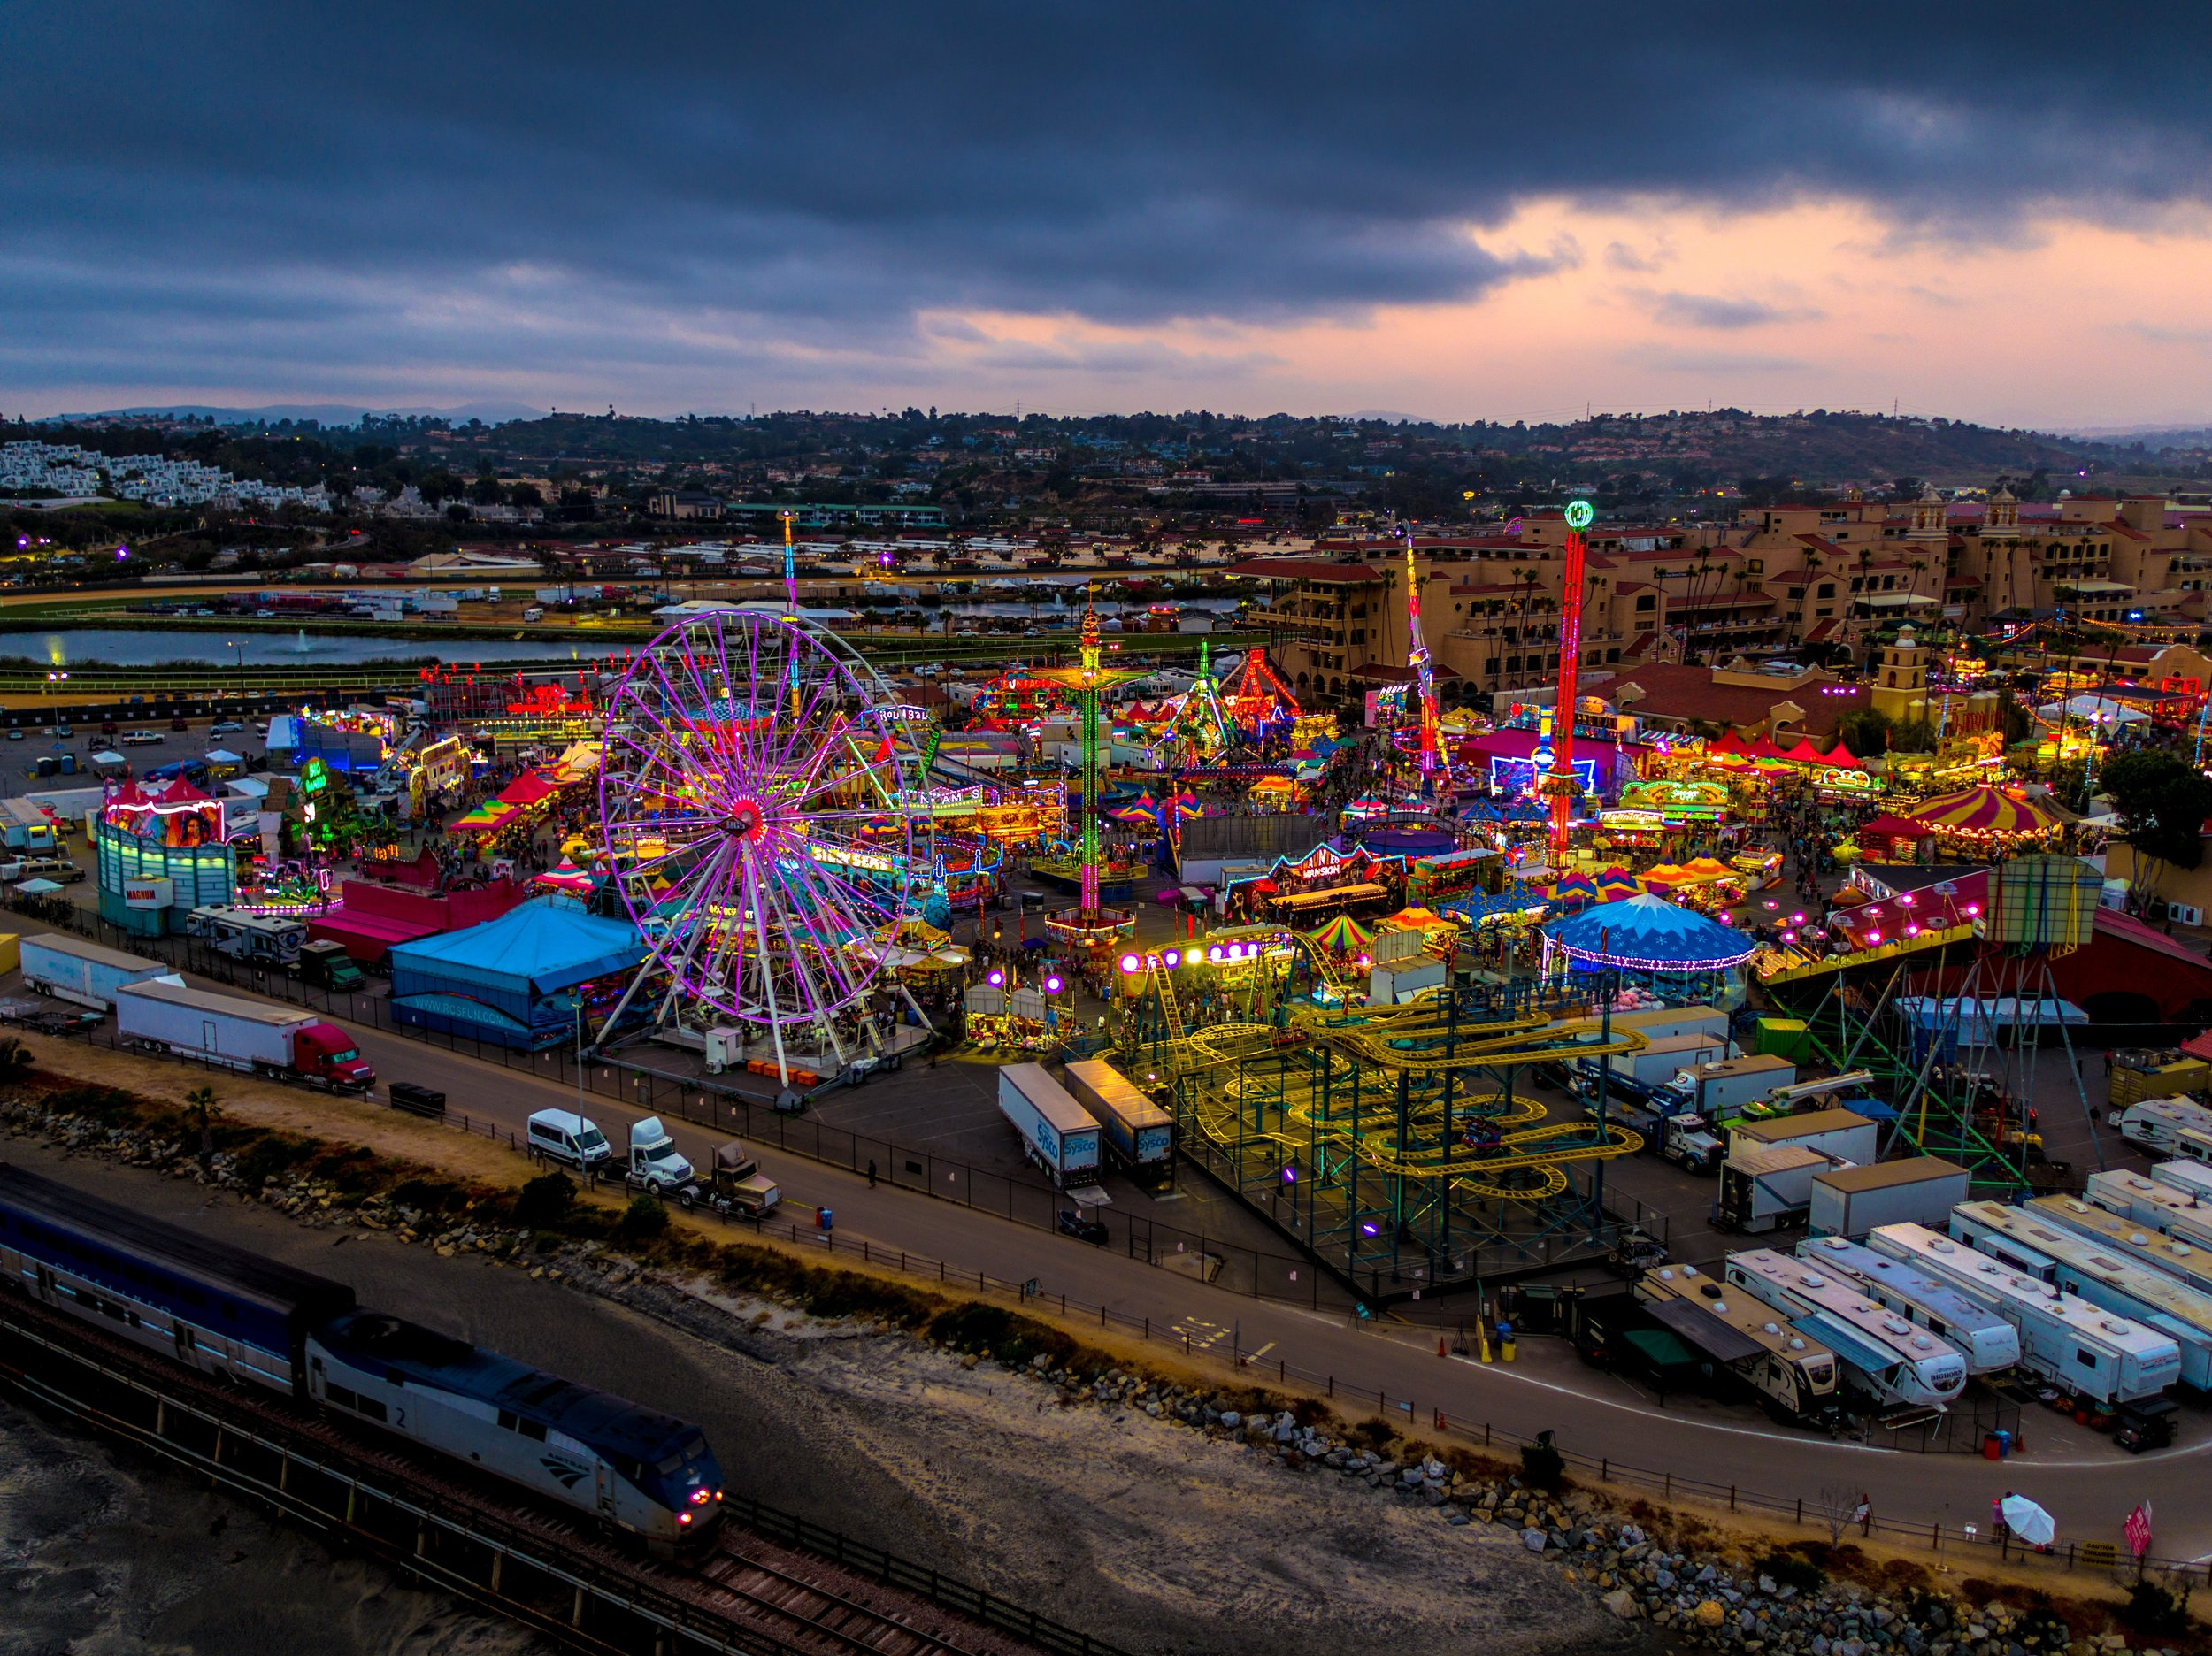 State fair at night.  Source: unsplash.com